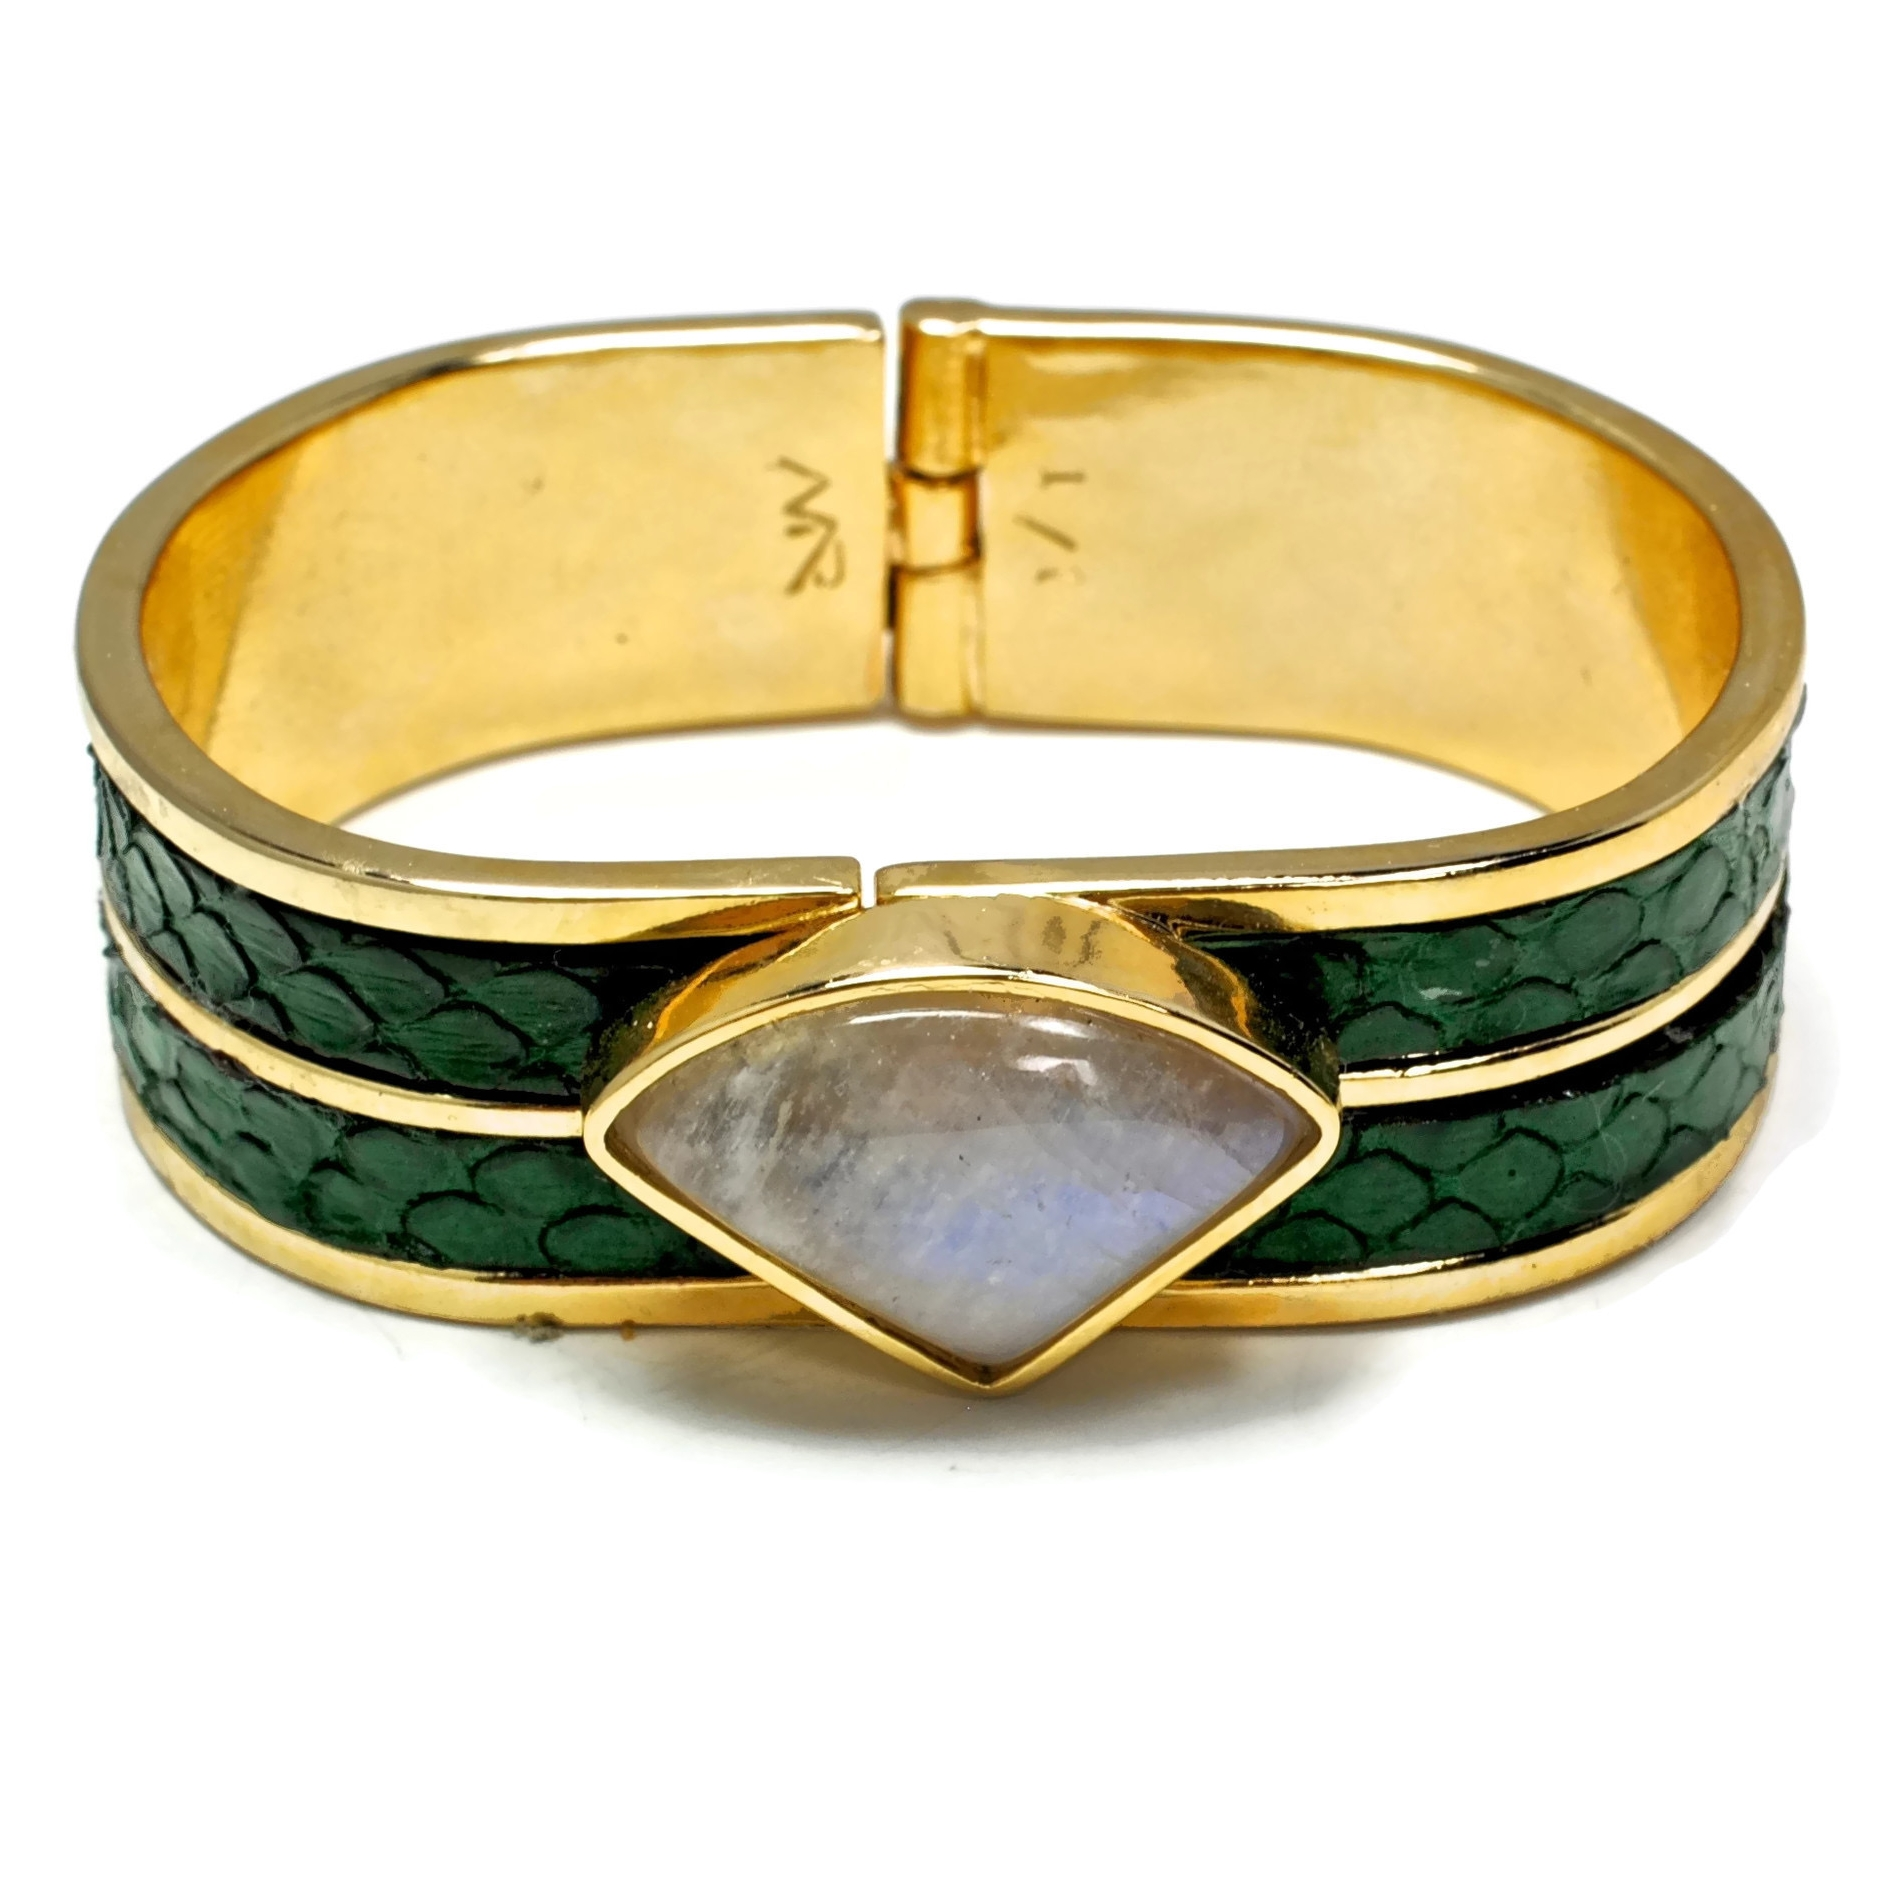 Opal and Snake Skin Set in a 14K Gold Plated Brass Cuff3.JPG